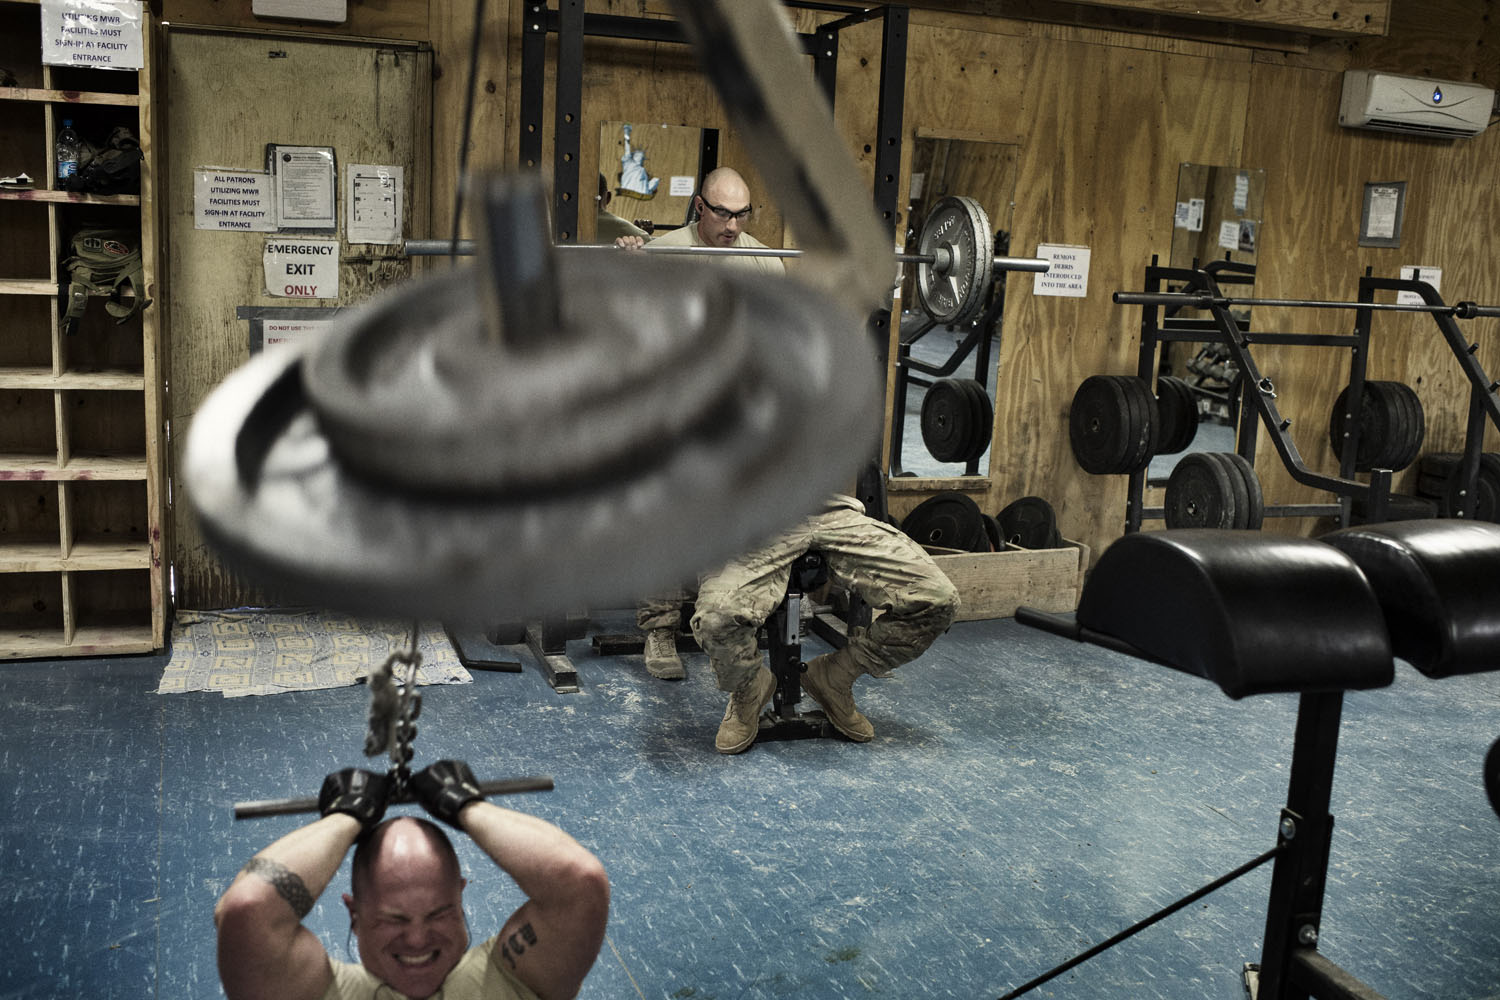 Paratroopers from 4th Battalion, 319th Airborne Field Artillery Regiment lift weights in the gym at Forward Operating Base Altimur, Logar Province, Afghanistan. The soldiers moved equipment from FOB Altimur in preparation to hand the base over to Afghan forces.